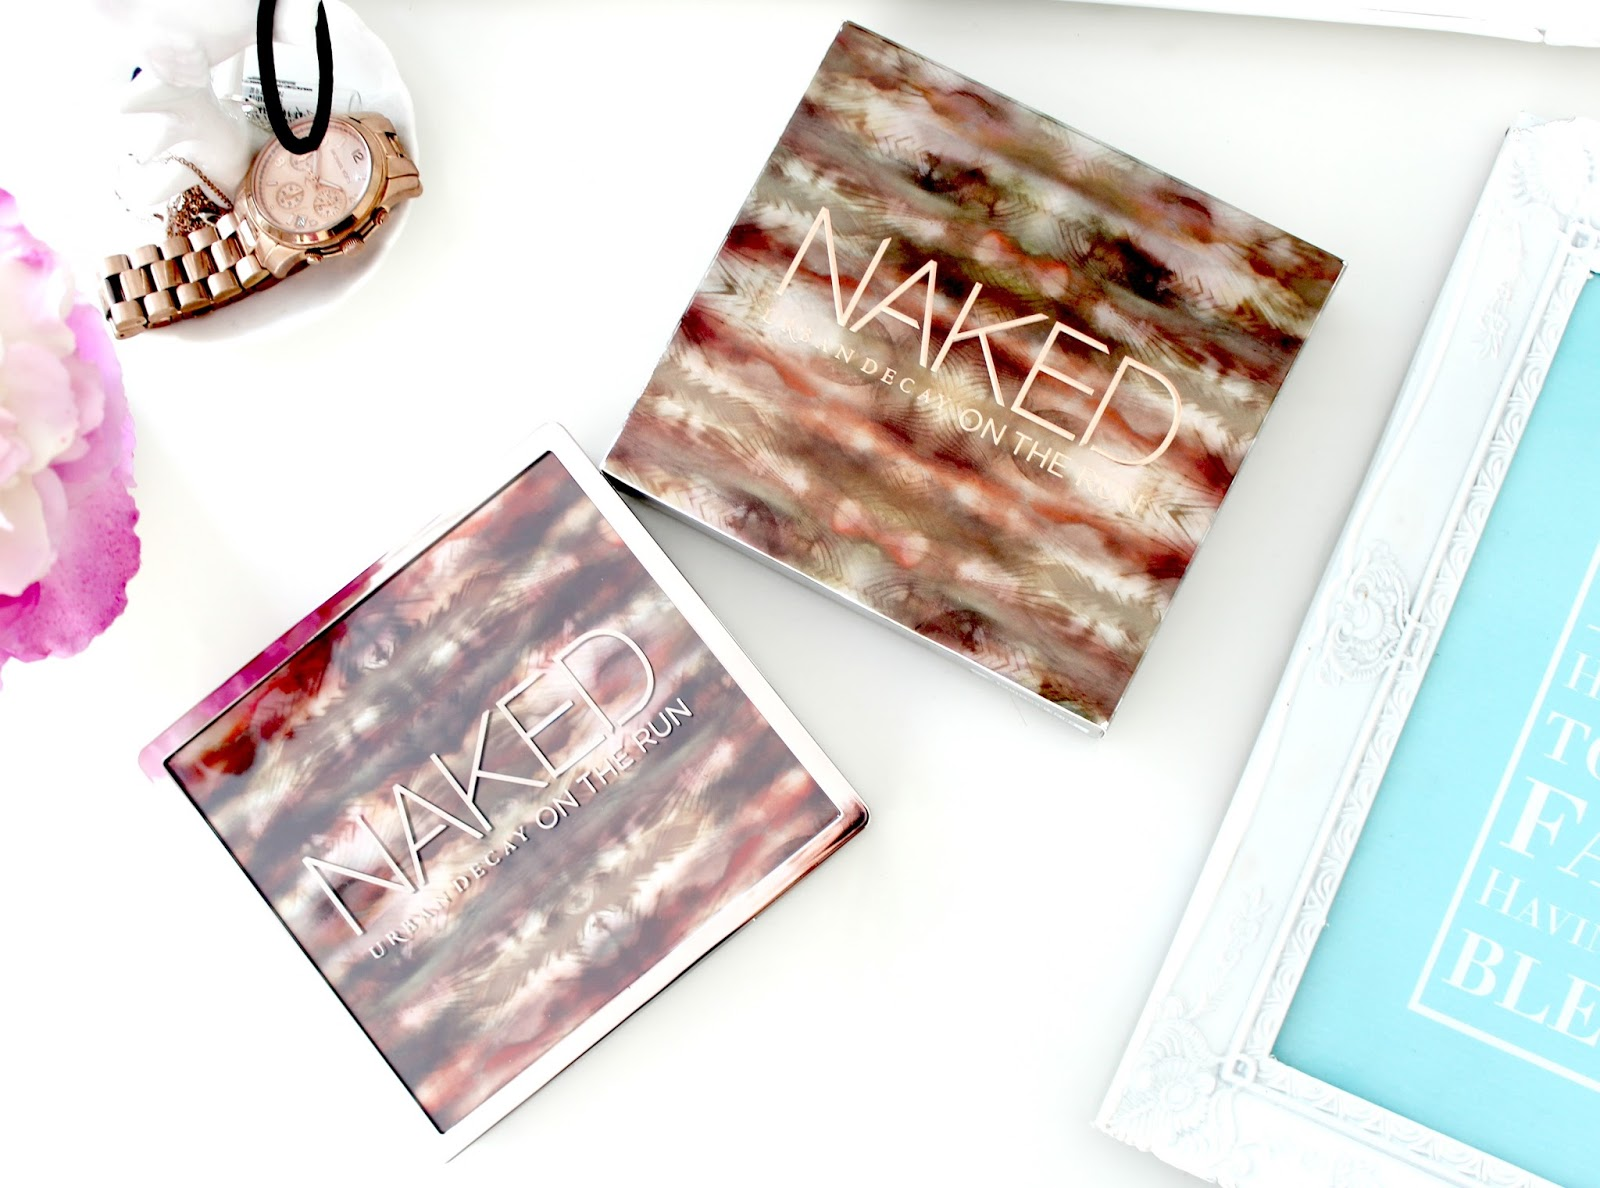 Urban Decay NAKED On The Run Palette Review, New Urban Decay Palette, Urban Decay On The Run Palette Review